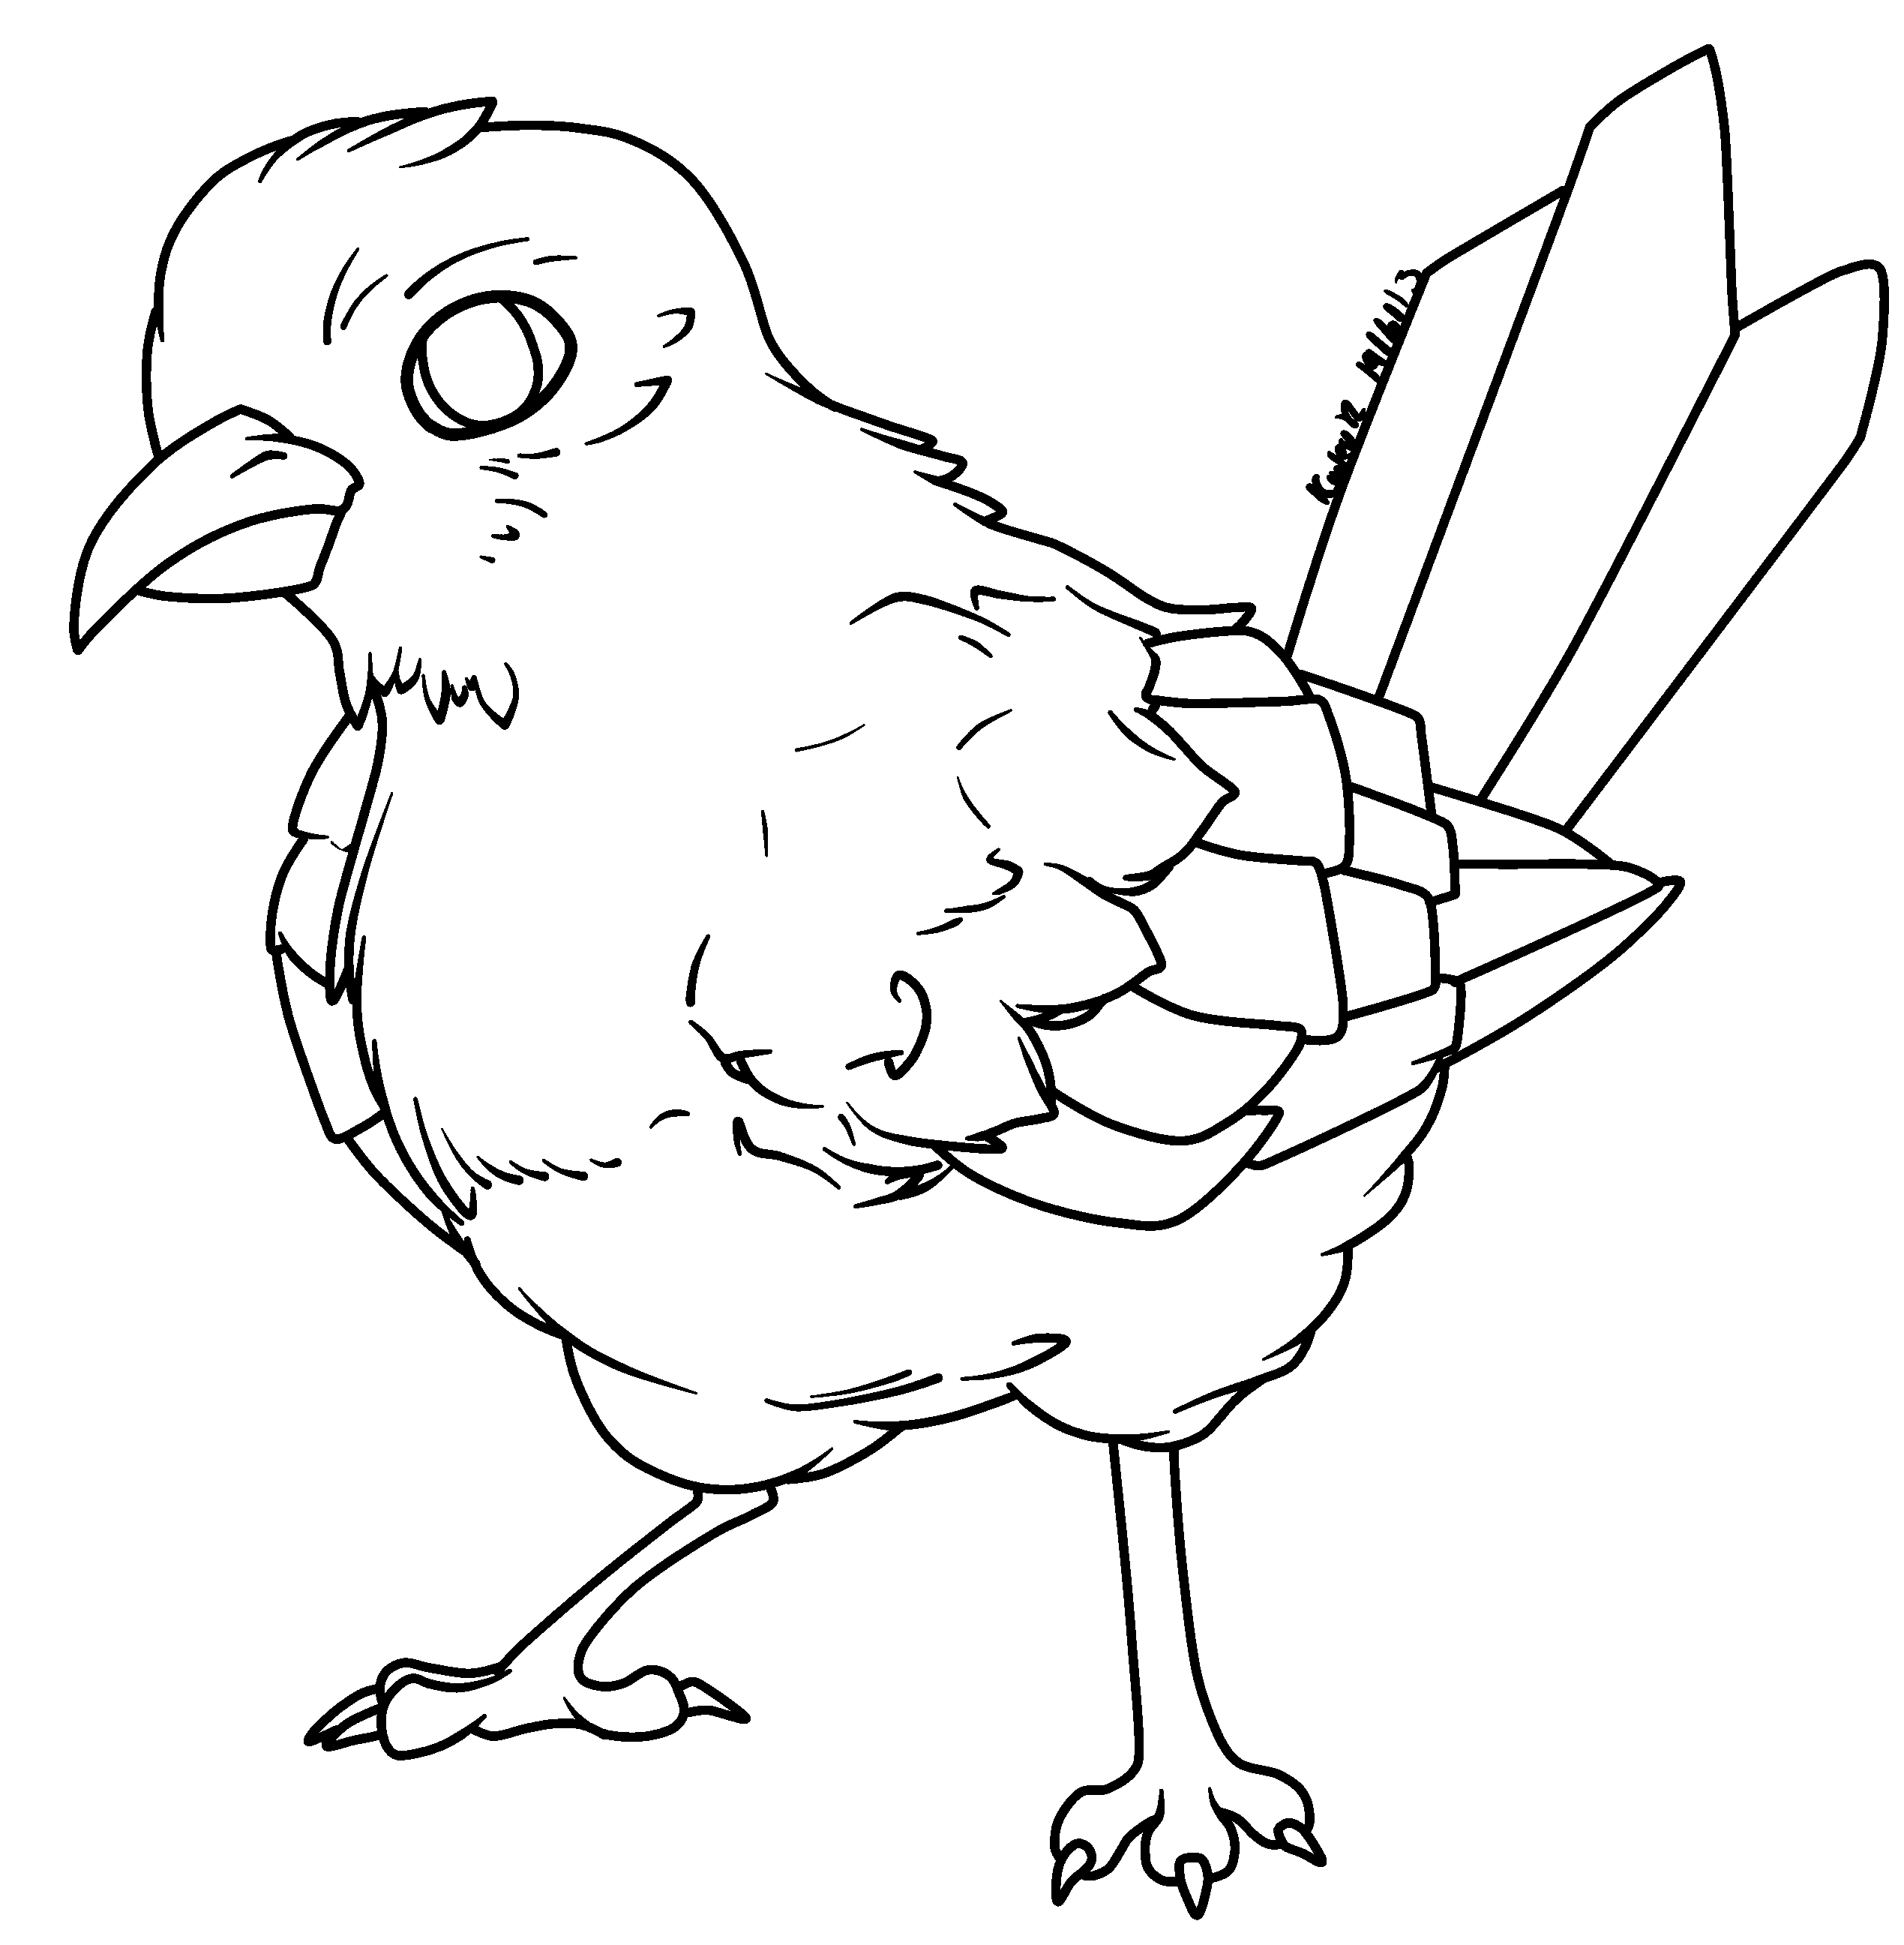 Quail Line Art : Rq bird lineart by abyssinchaos on deviantart